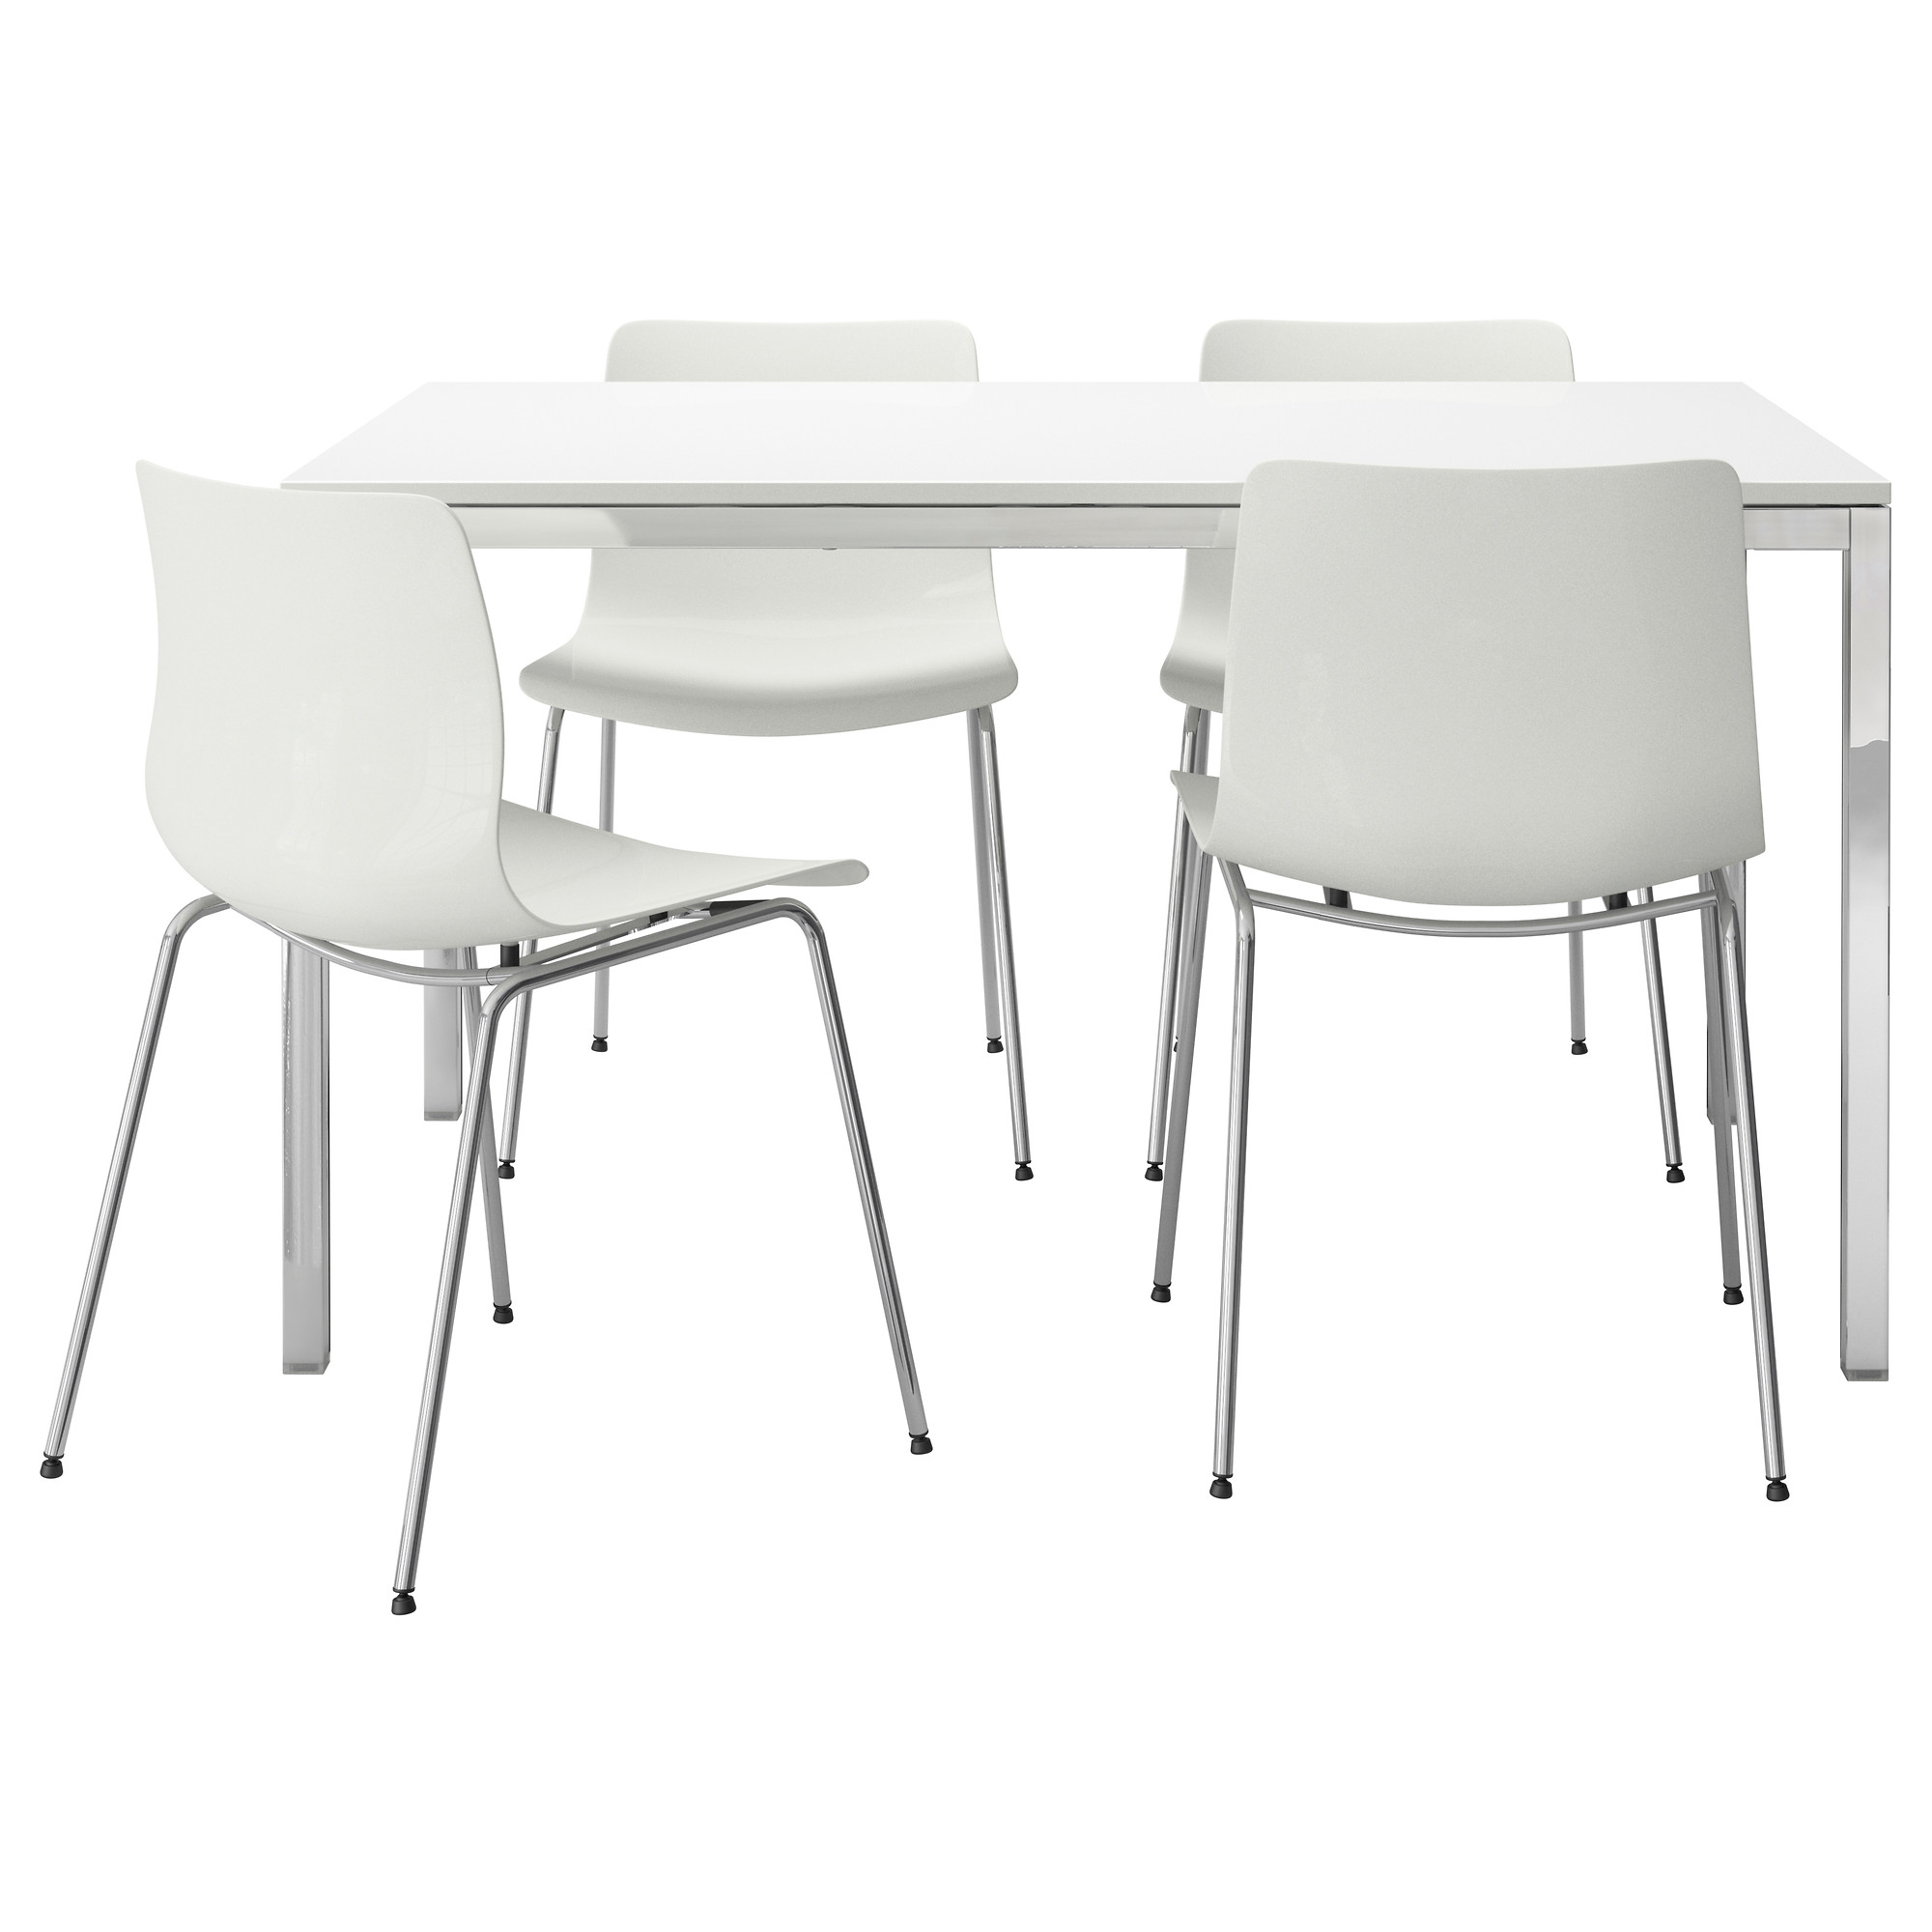 kitchen-chairs-ikea-photo-8